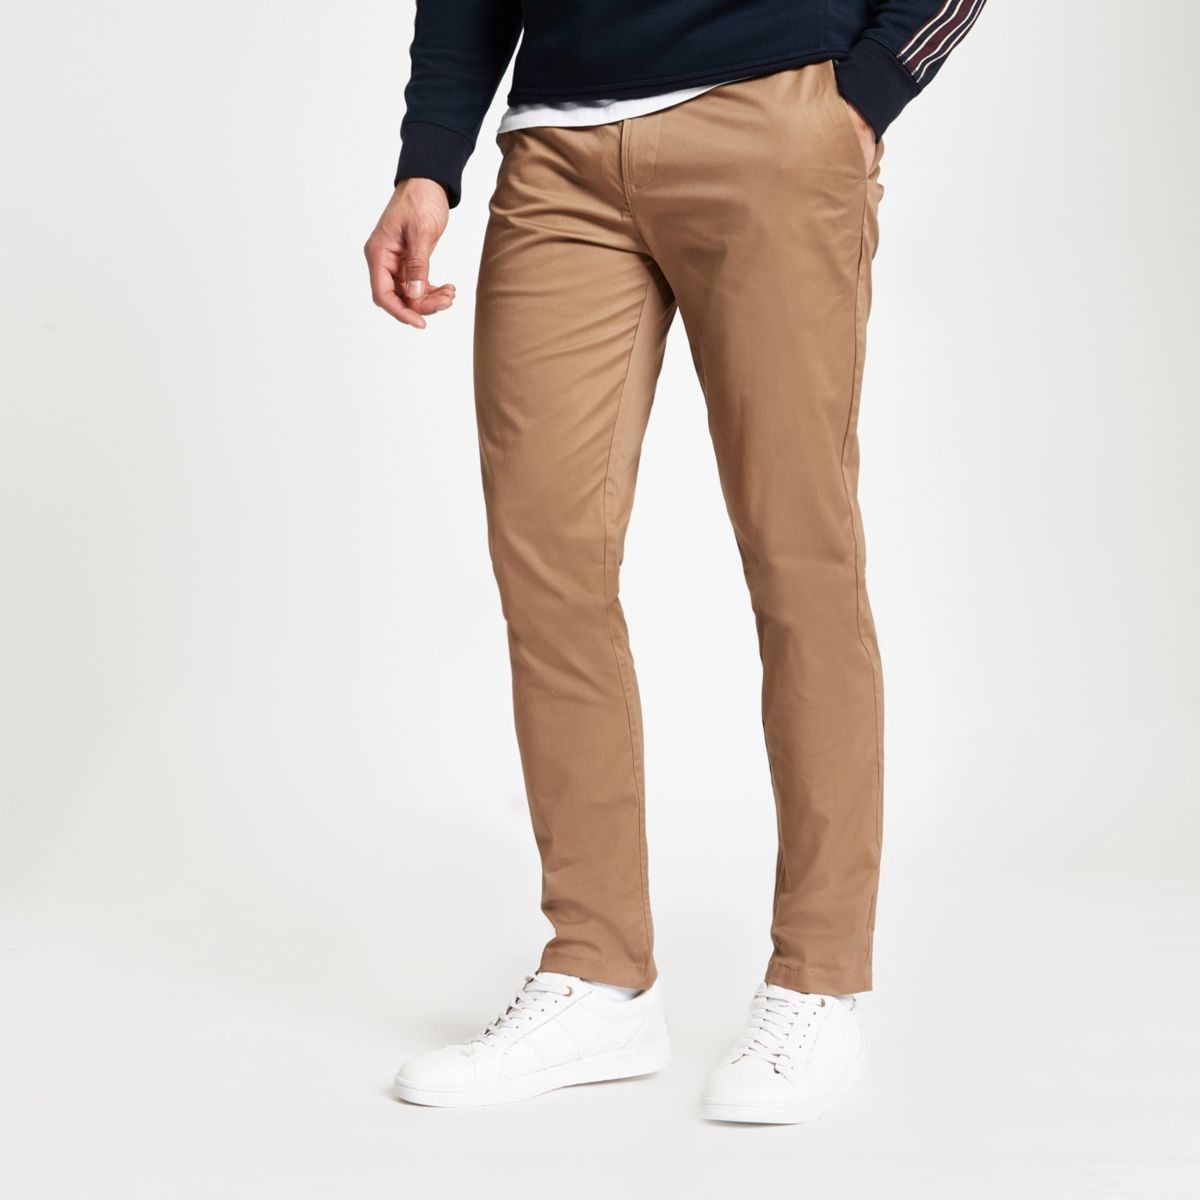 Light brown slim fit chino pants